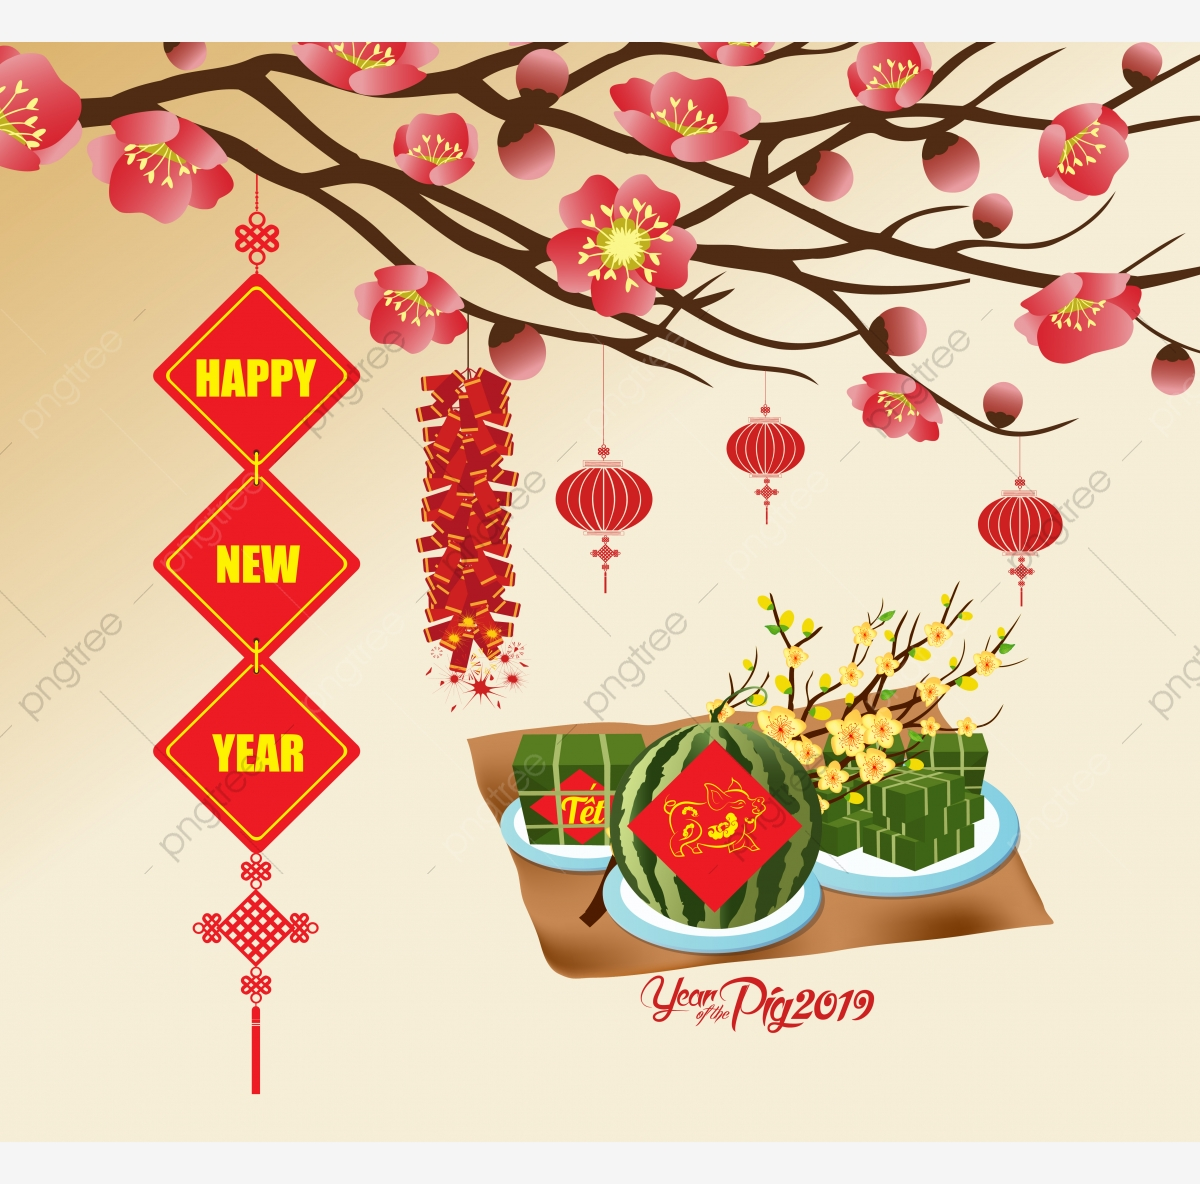 Chinese New Year, 2019, Pig, Lantern PNG Transparent Image and.